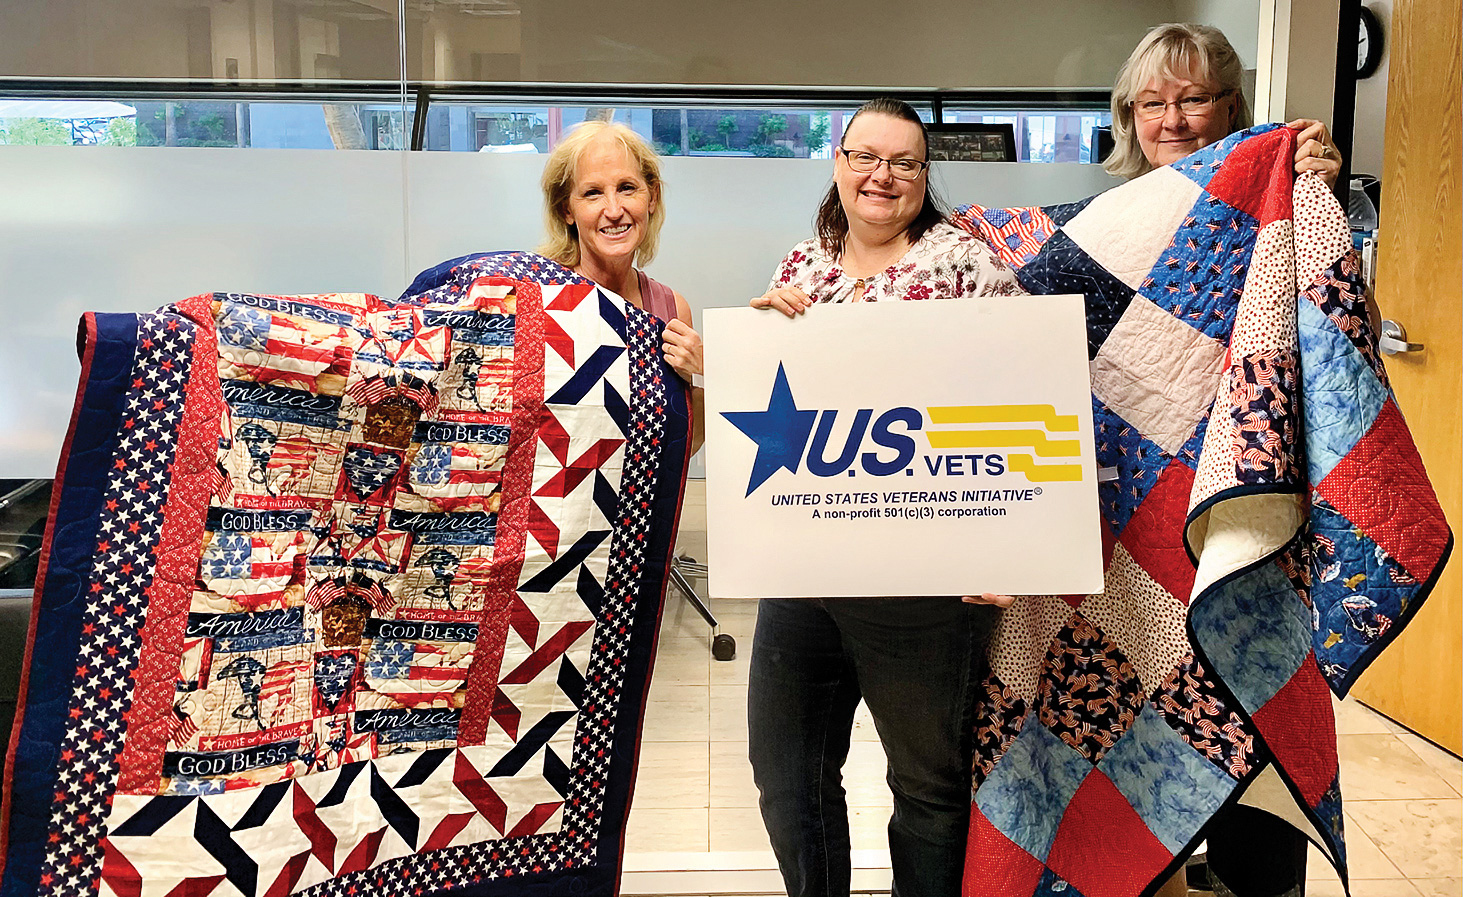 Jody Edwards (left) and Diana Jones (right) presented quilts to Kristen Kerns (center) for the U.S. Veterans organization in Phoenix.